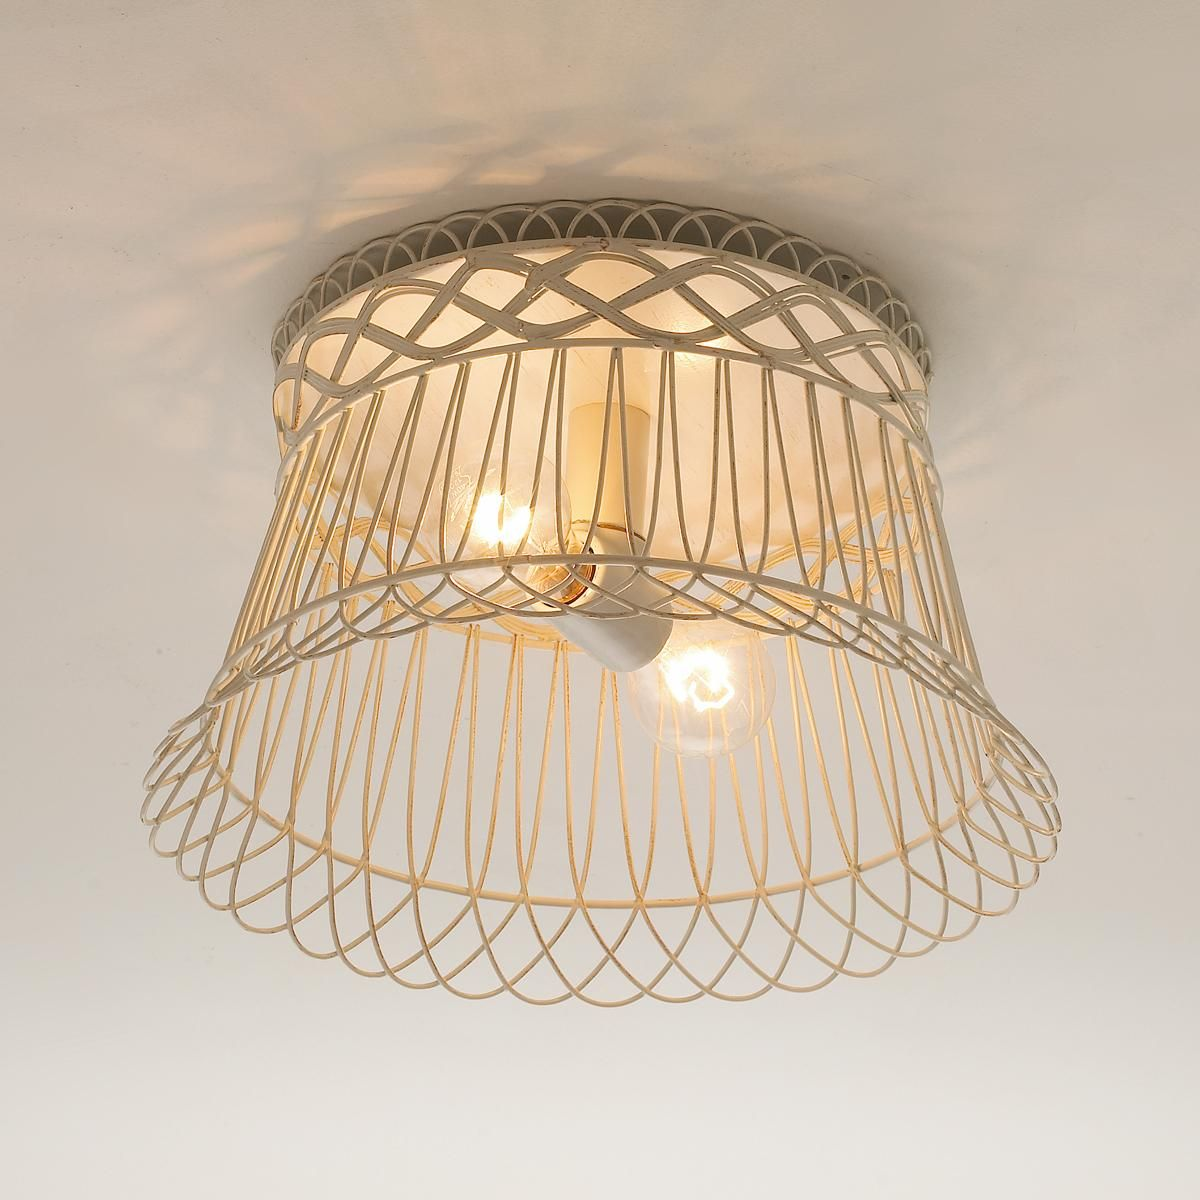 Vintage wire basket ceiling light shades of light 149 i lampshades aloadofball Gallery